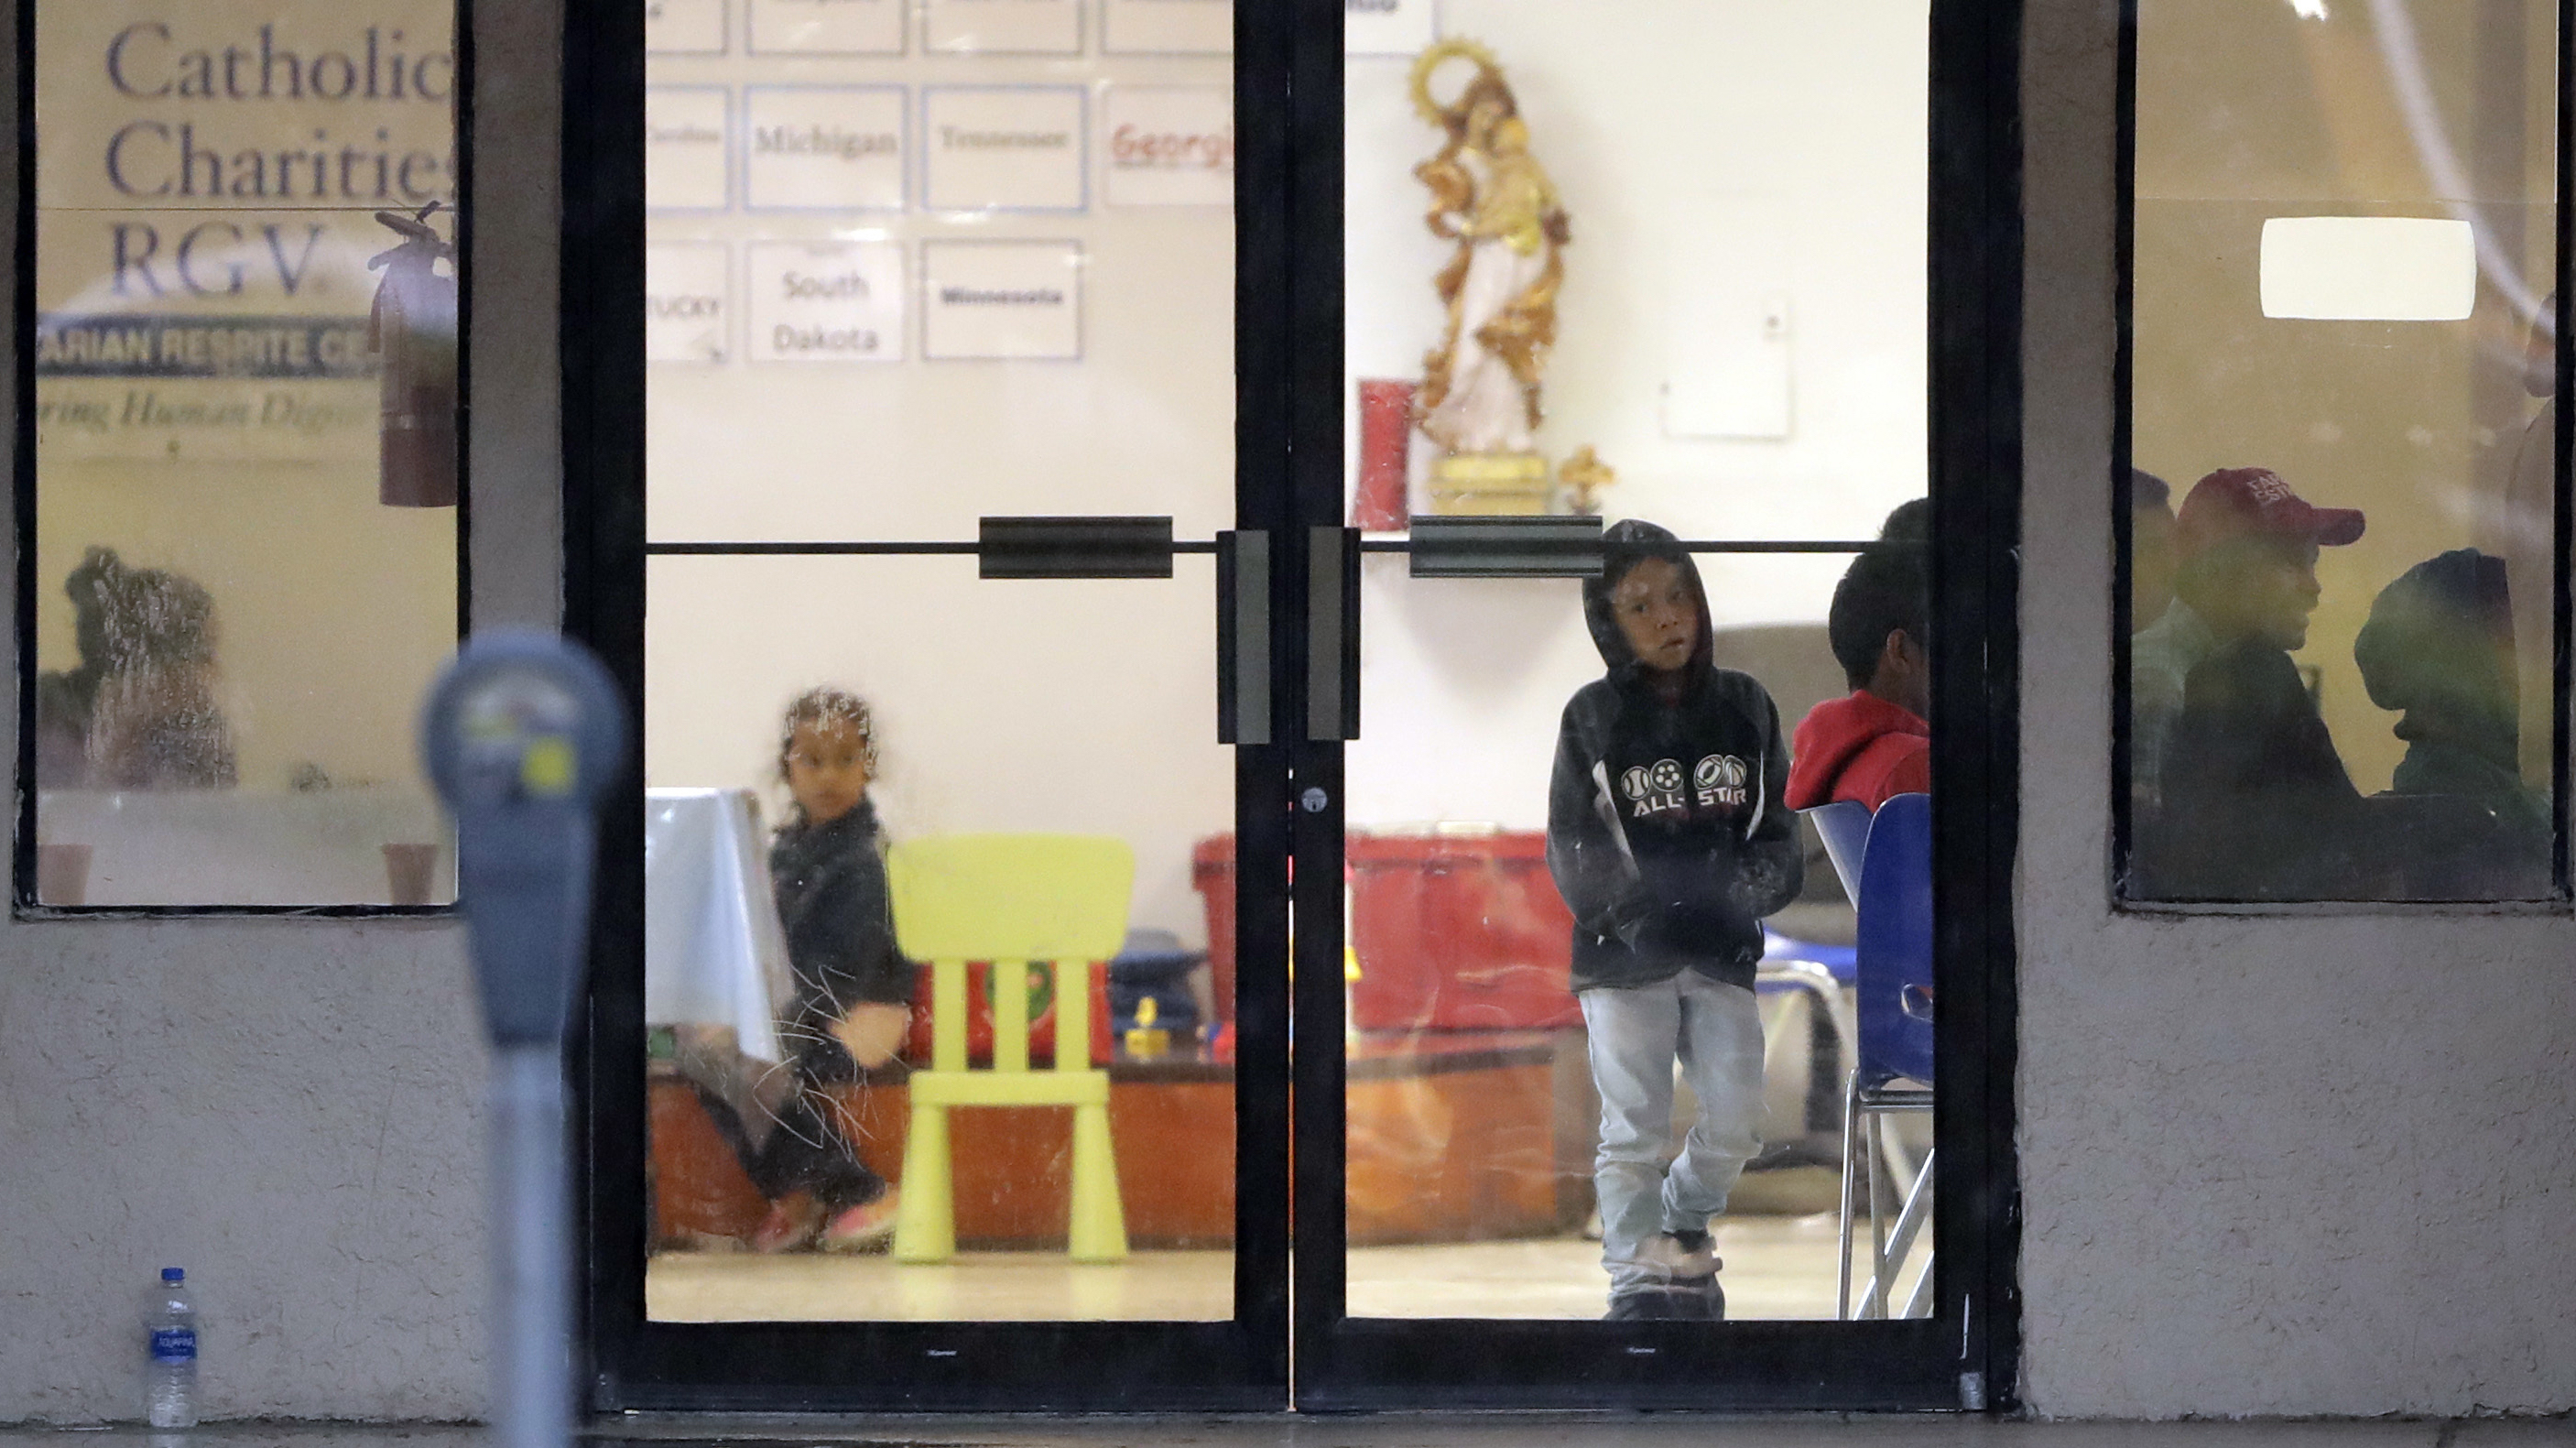 <p>Immigrants recently processes and released by U.S. Customs and Border Protection wait at the the Catholic Charities RGV, Wednesday, June 20, 2018, in McAllen, Texas.</p>